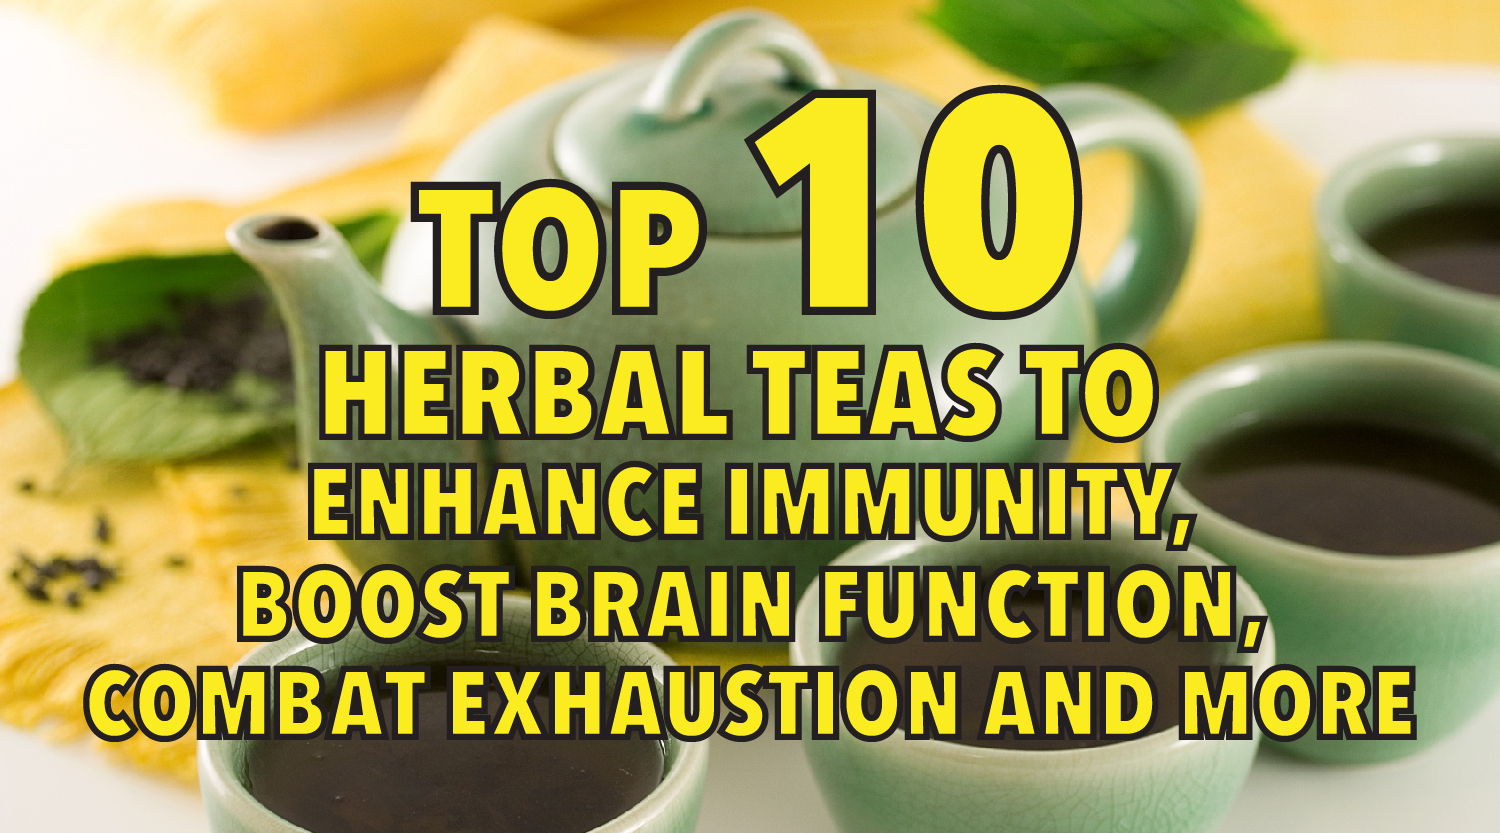 Top 10 herbal teas to improve immunity, etc